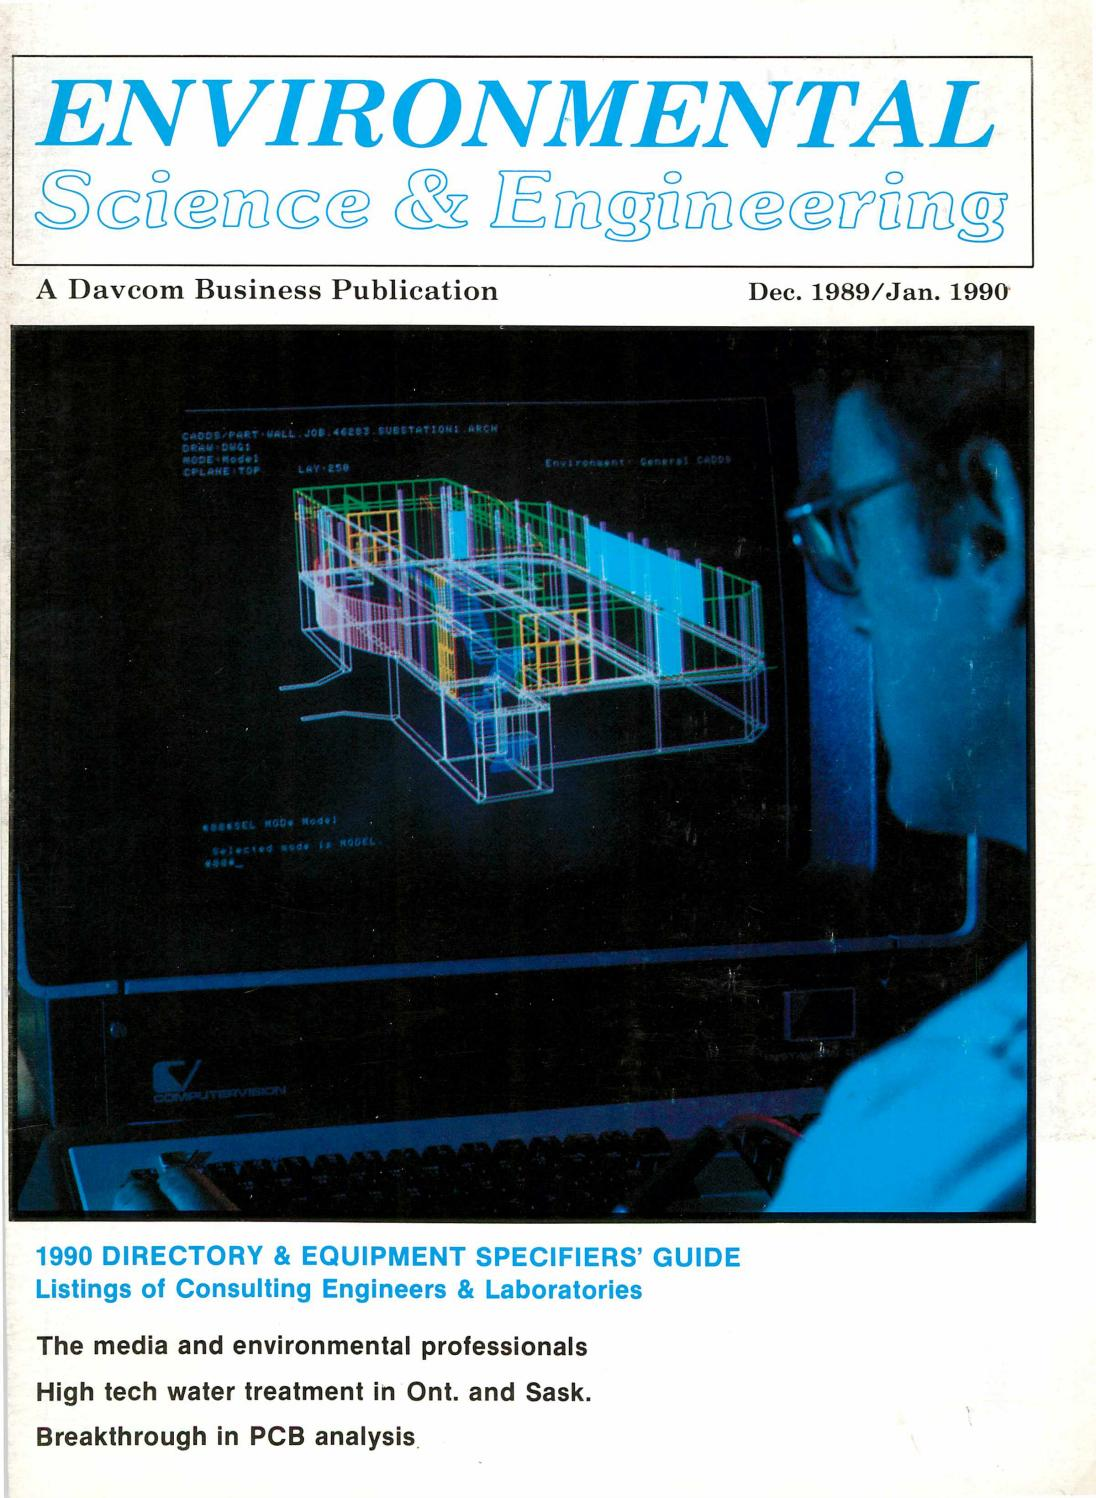 Environmental Science Engineering Magazine Esemag December 1989 Circuit Board Soap Lotion Dispenser Glass Potty Training Concepts January 1990 By And Issuu